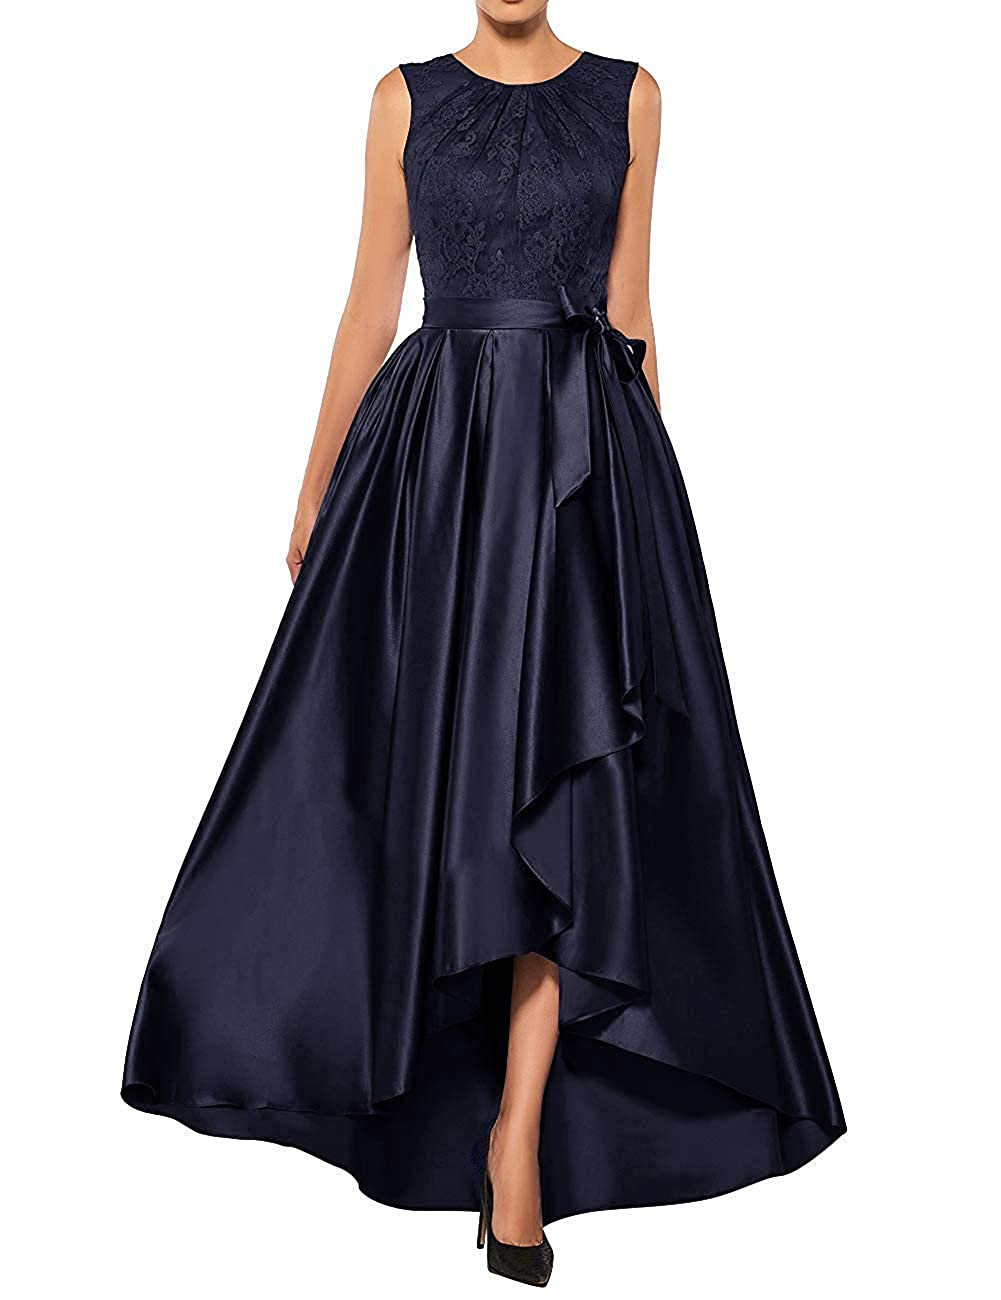 Navy bluee JINGDRESS Satin Mother of The Bride Dresses High Low Formal Evening Party Gowns for Wedding